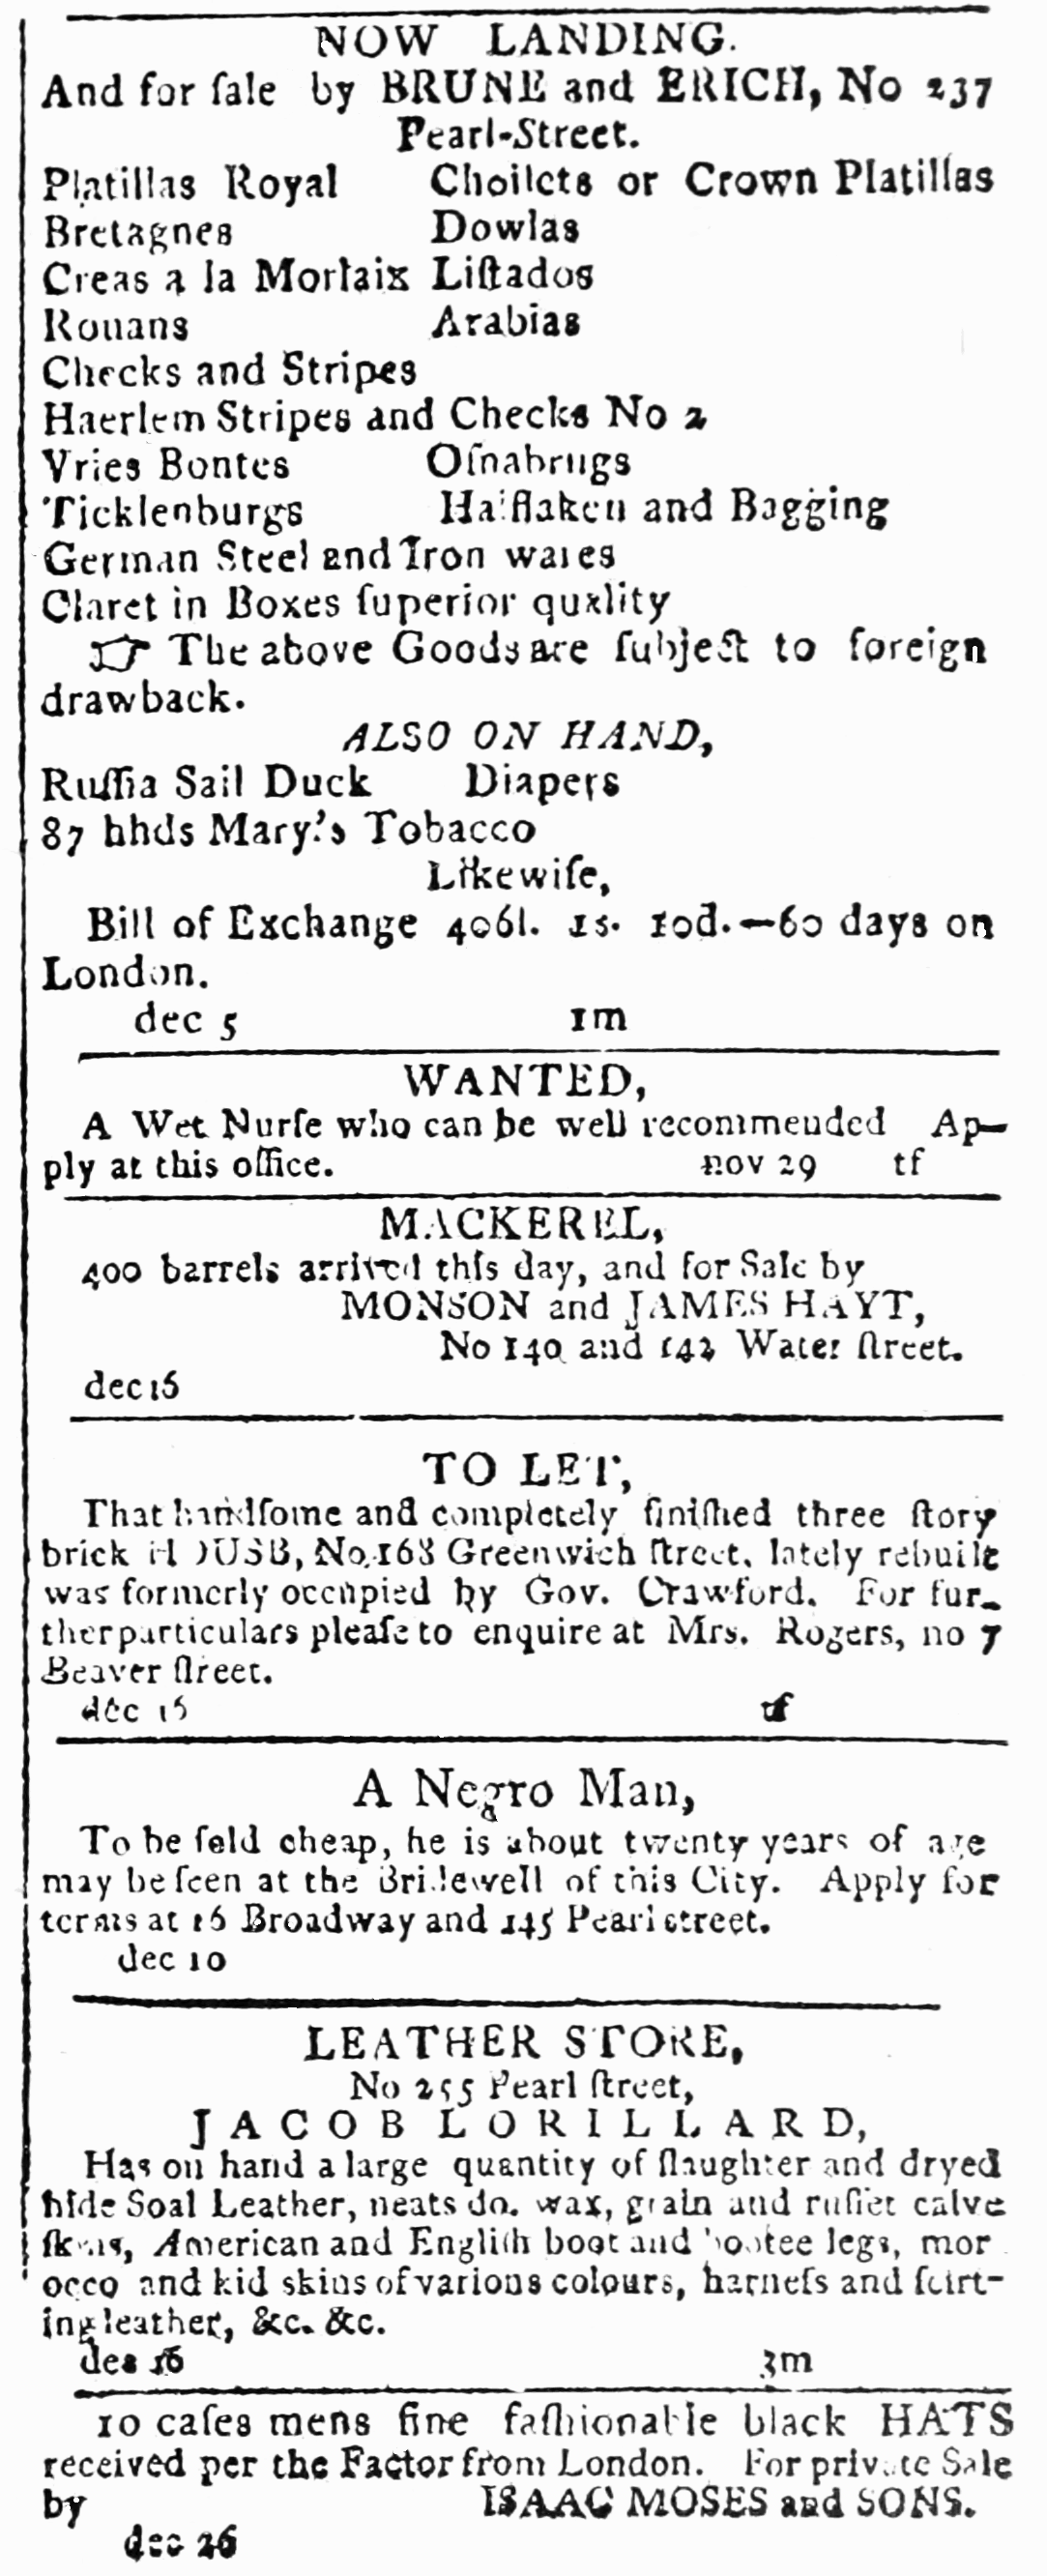 PSM V56 D0199 From the new york daily advertiser 1800.png